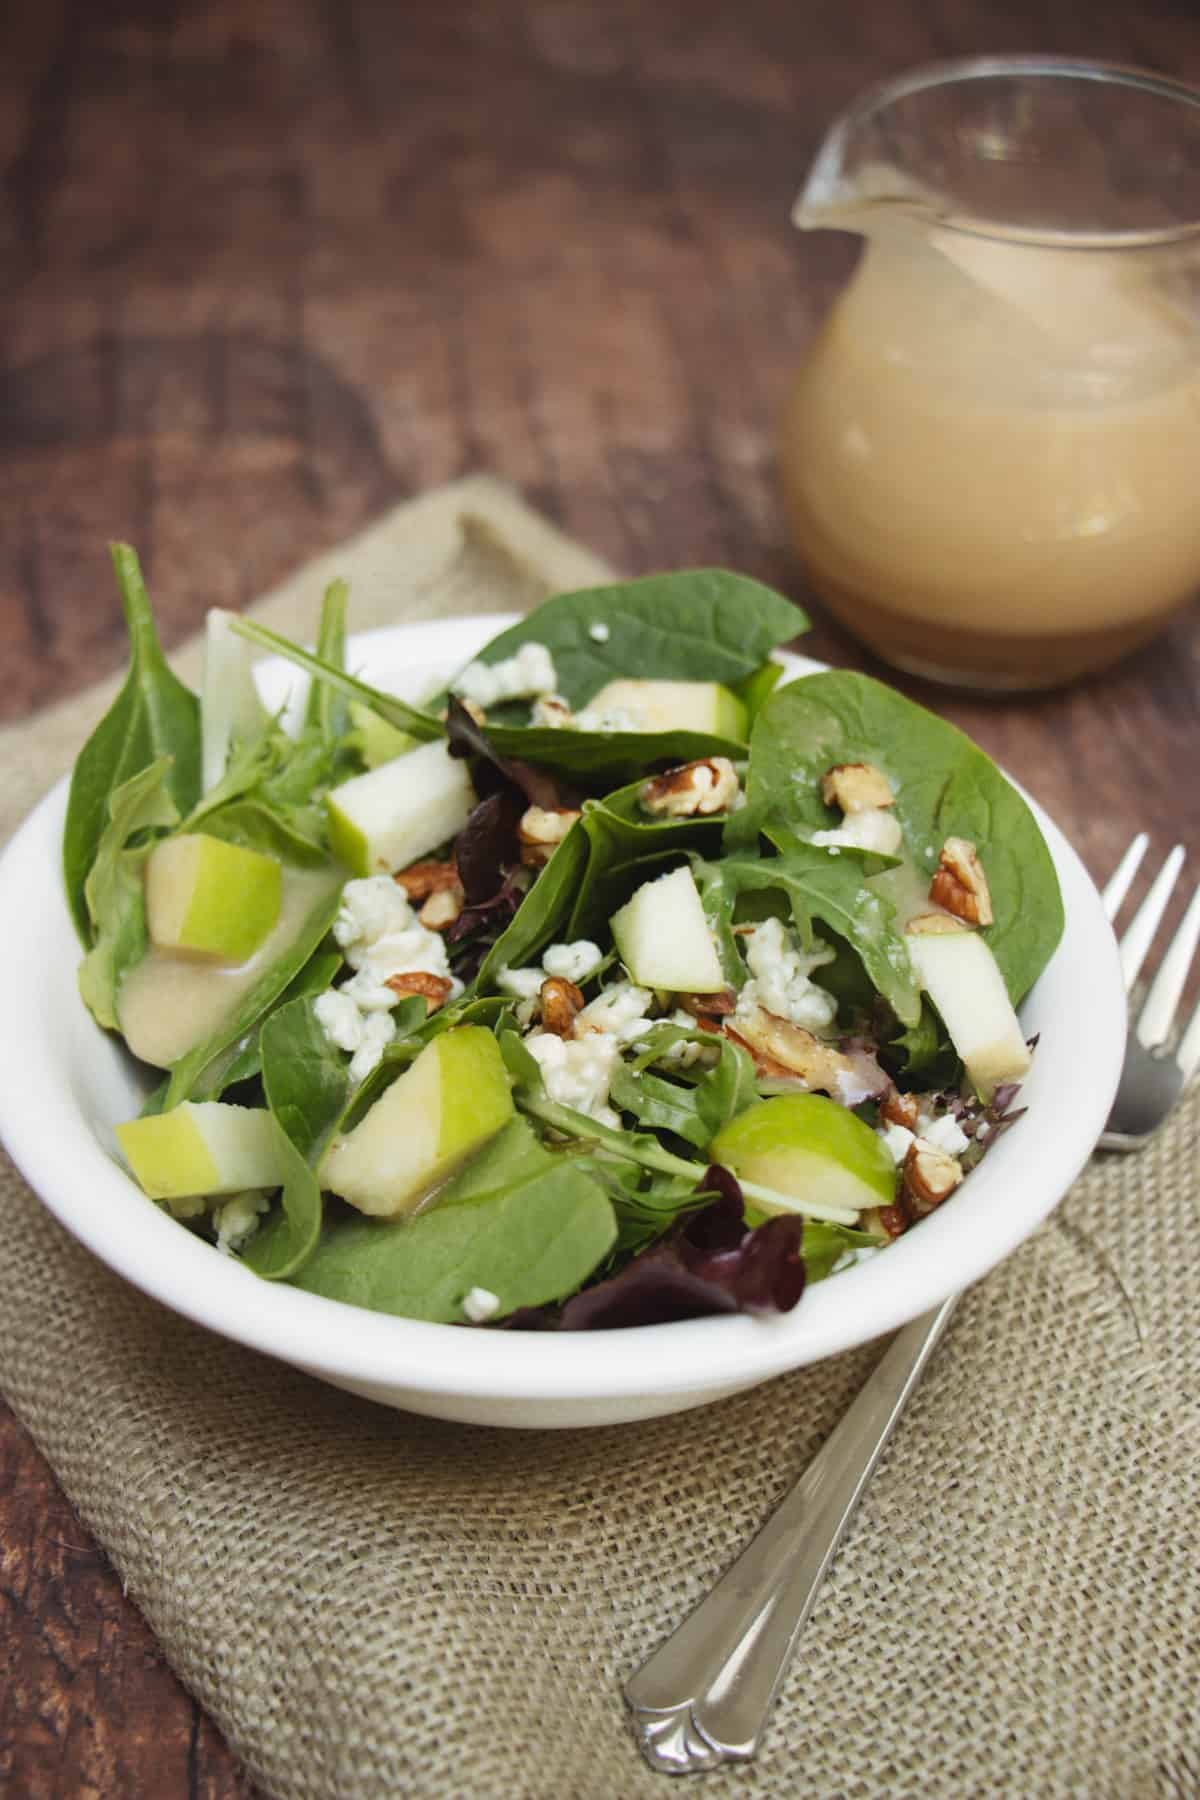 Salad with green apples, blue cheese and pecans in a white bowl on a burlap napkin with dressing in corner.